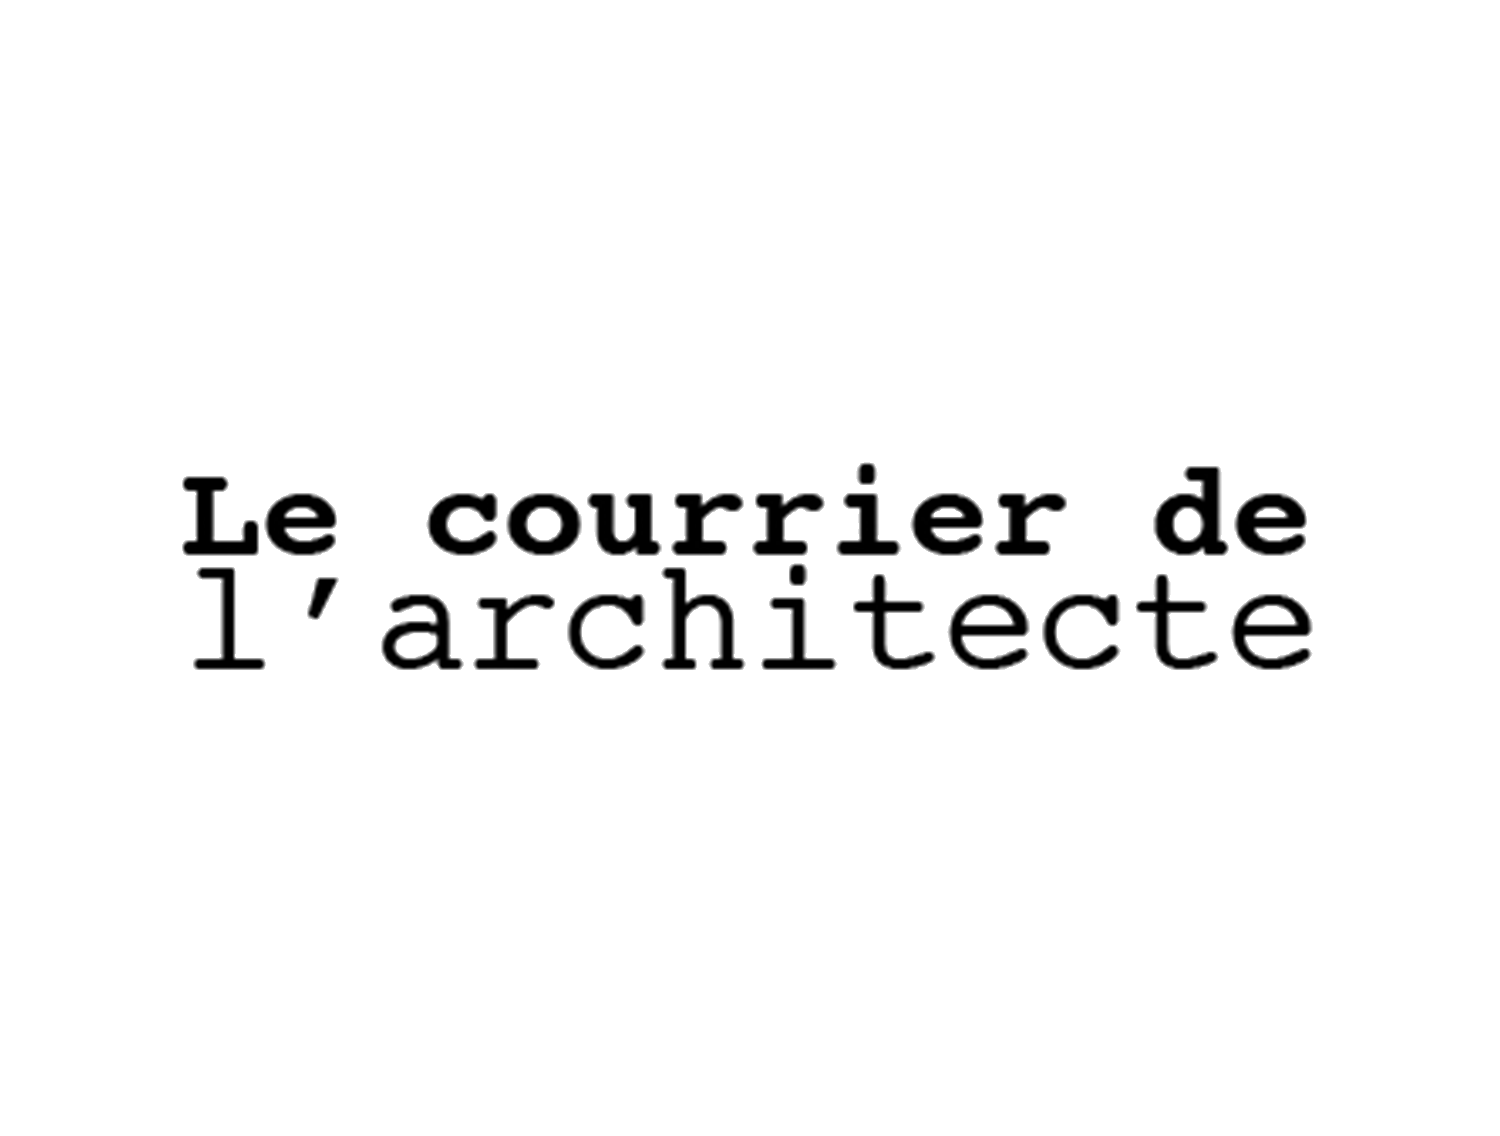 recp - JAN. 2018 | Le courrier de l'architecte publishes its annaul recap featuring some of the office's projects from 2017